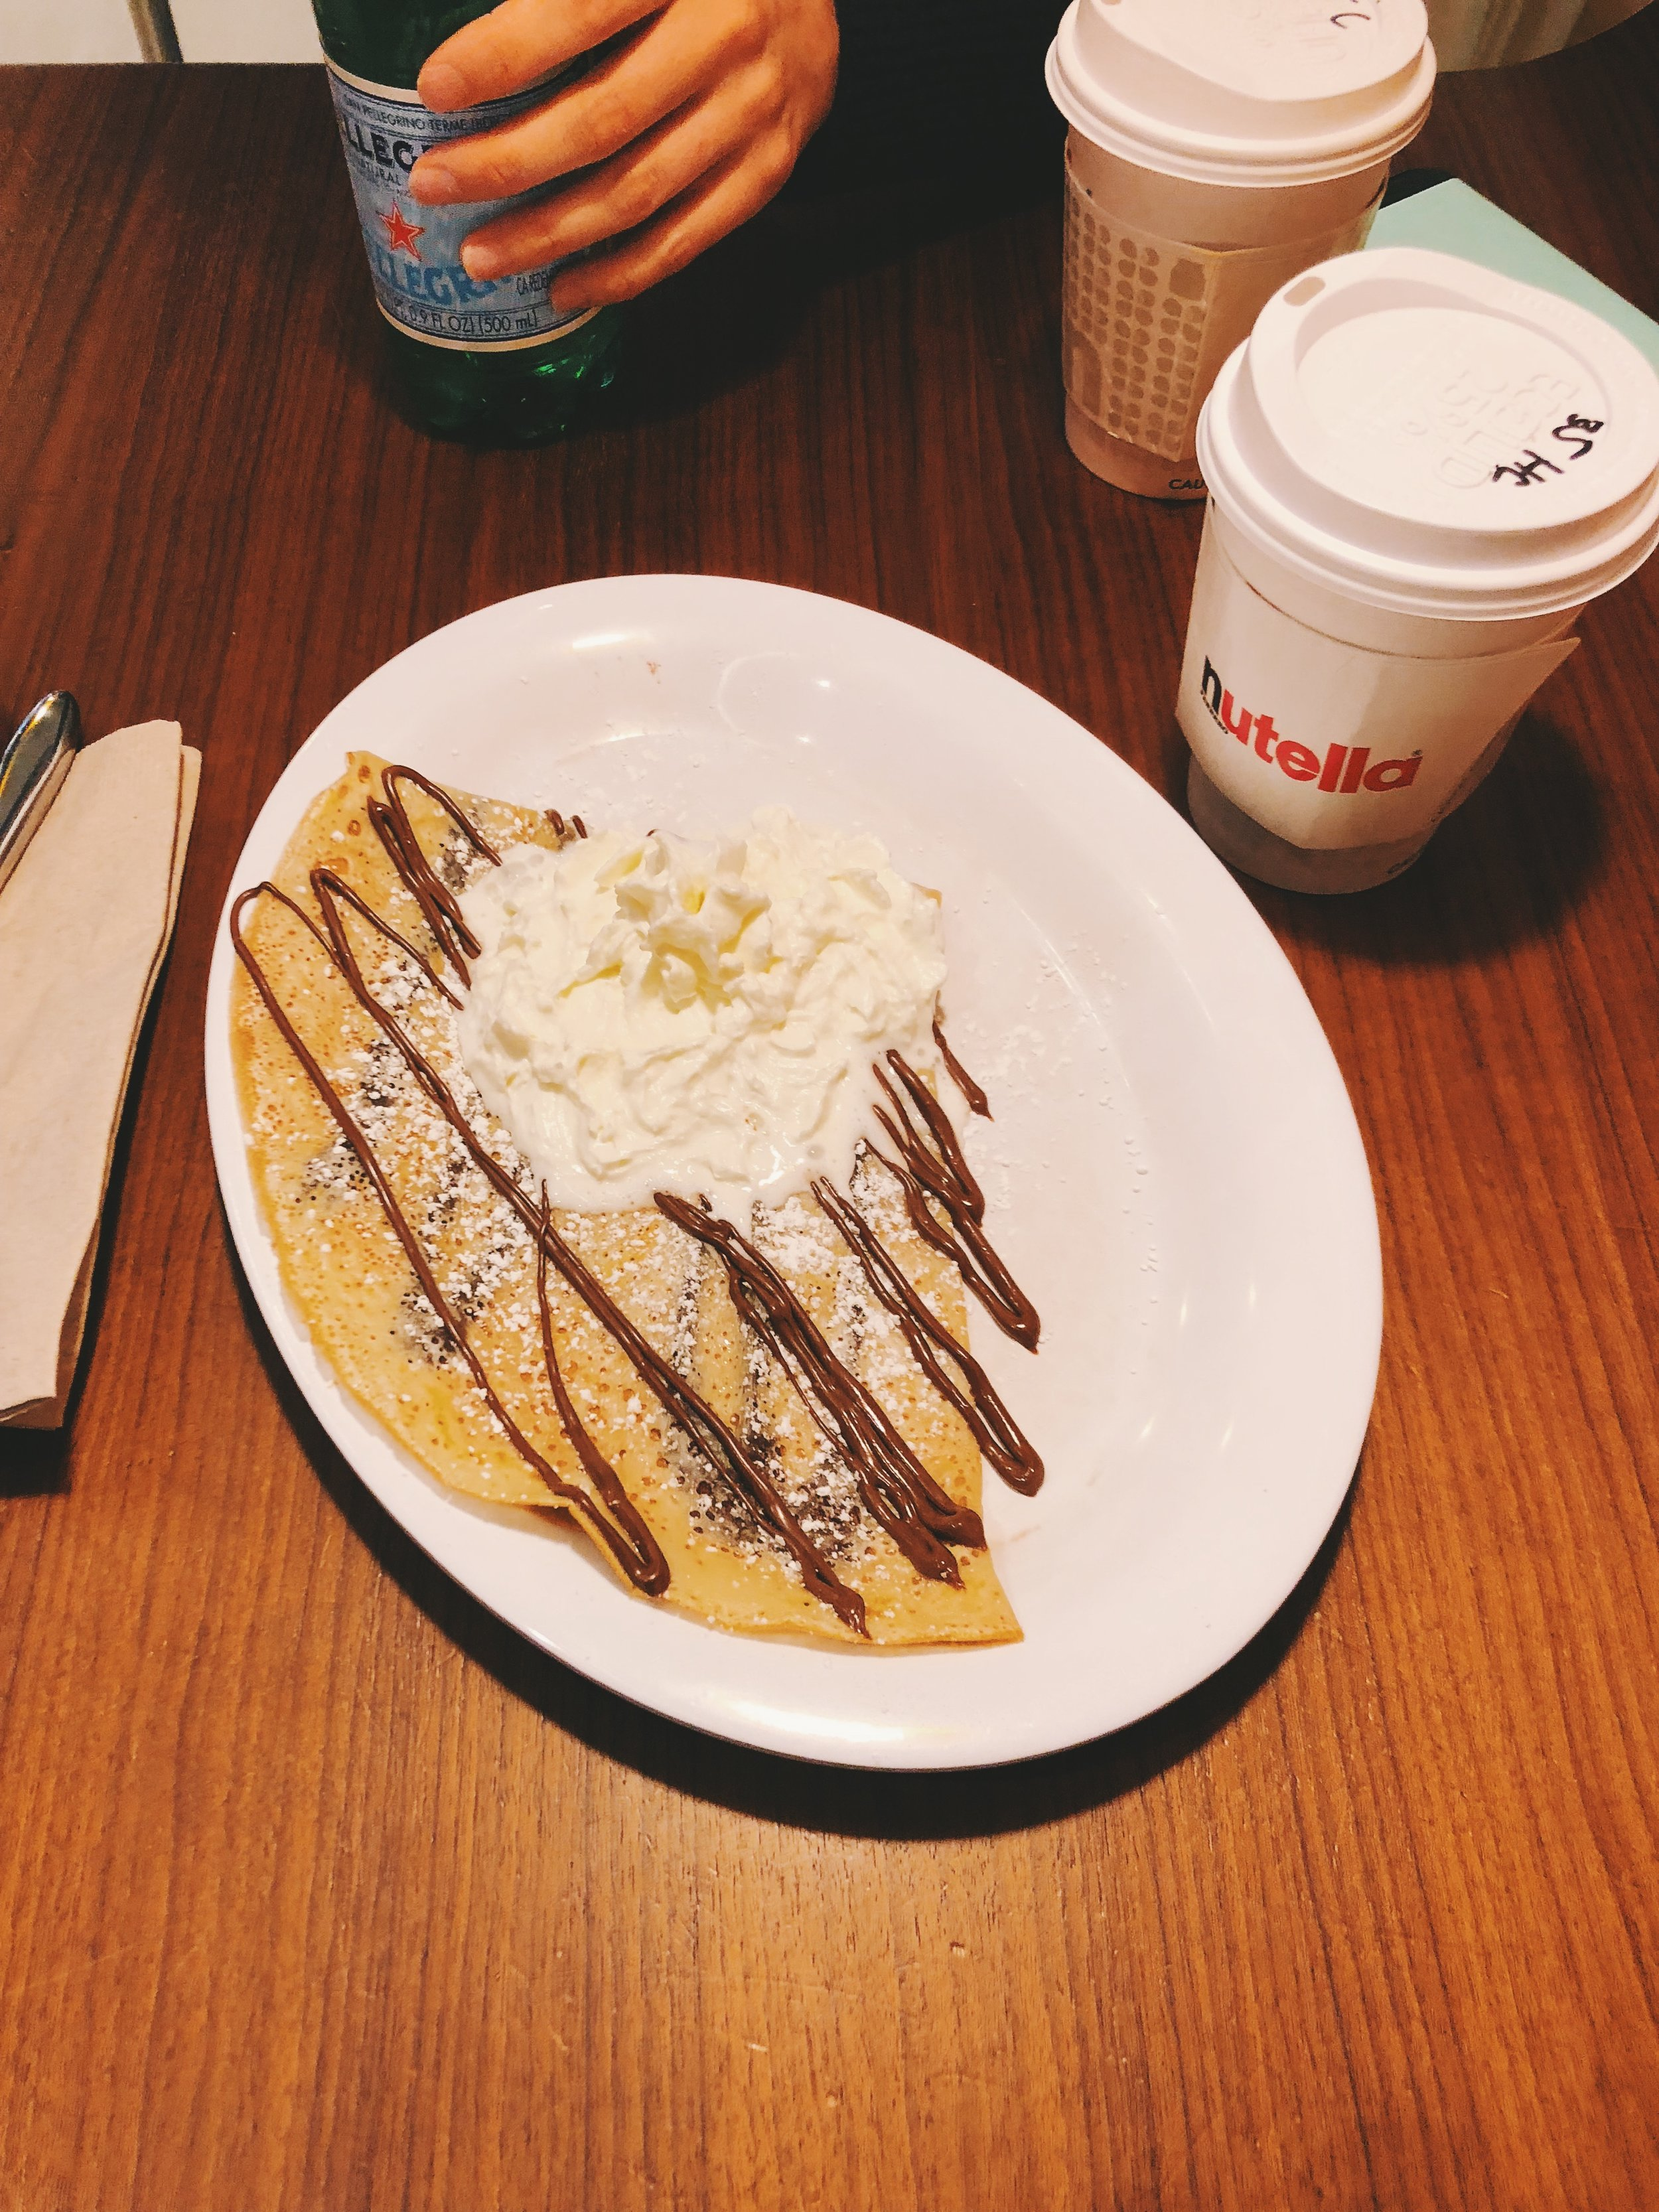 I actually enjoyed this more than the one crepe I ate in Paris. But do not tell Paris that. I'm not trying to start WWIII.